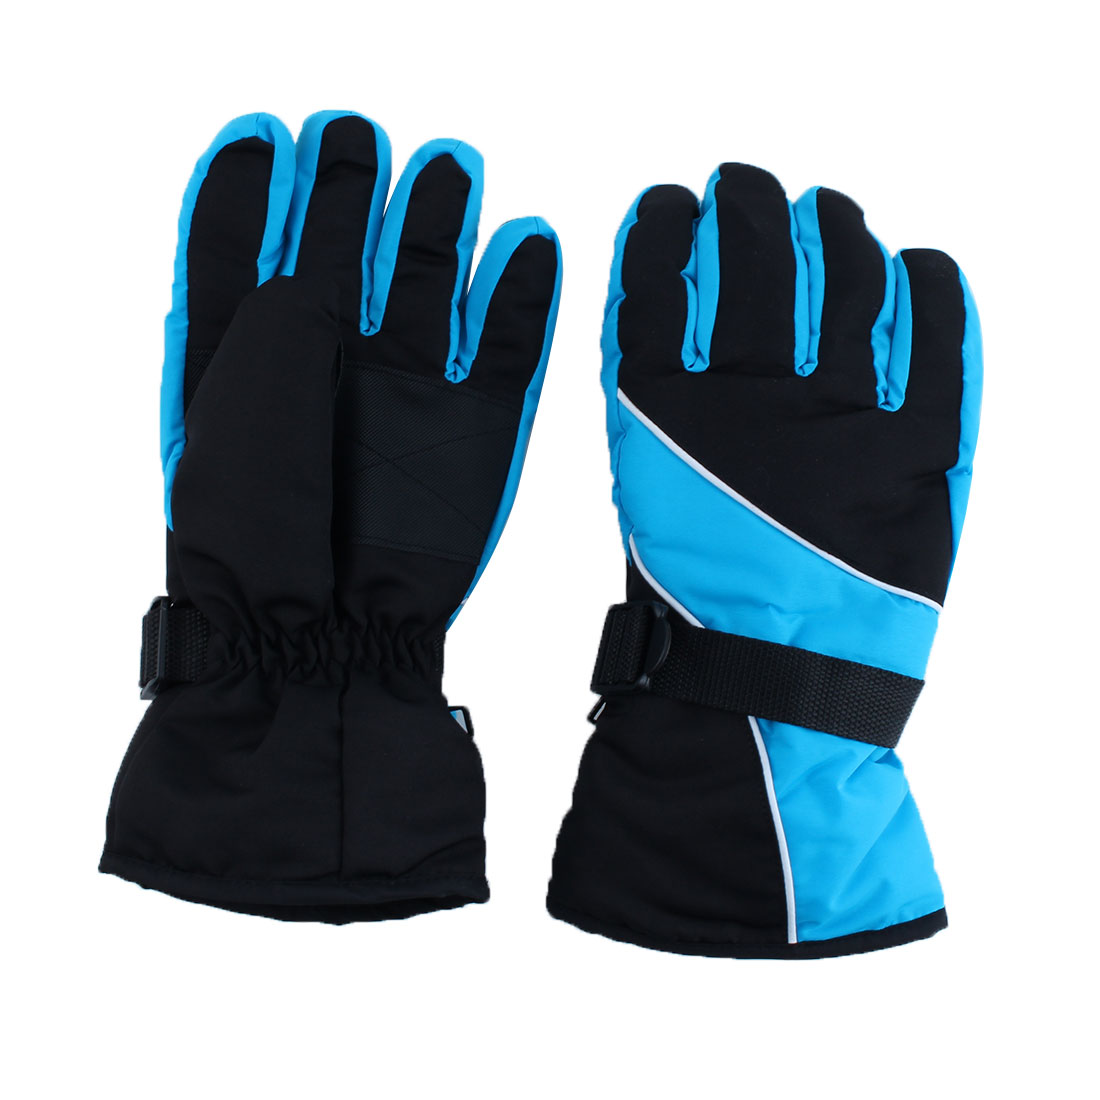 Motorcycle Climbing Winter Snowmobile Ski Gloves Athletic Mitten Light Blue Pair by